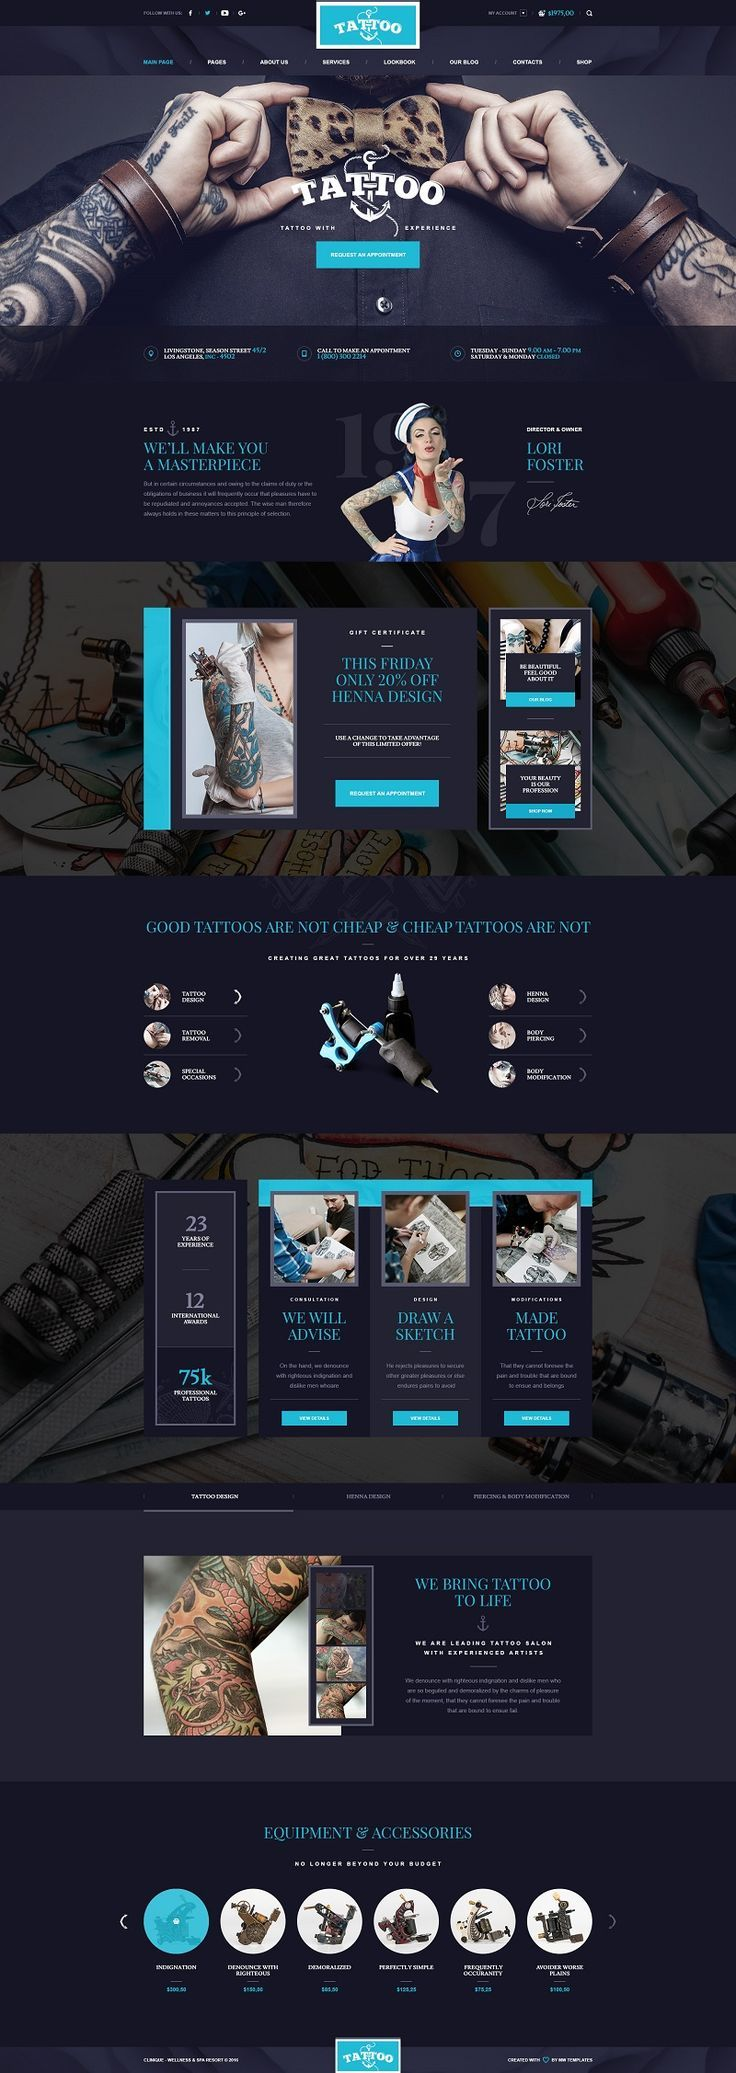 amazing 39 best web design images on pinterest website designs landing pages and mobile - Web Page Design Ideas